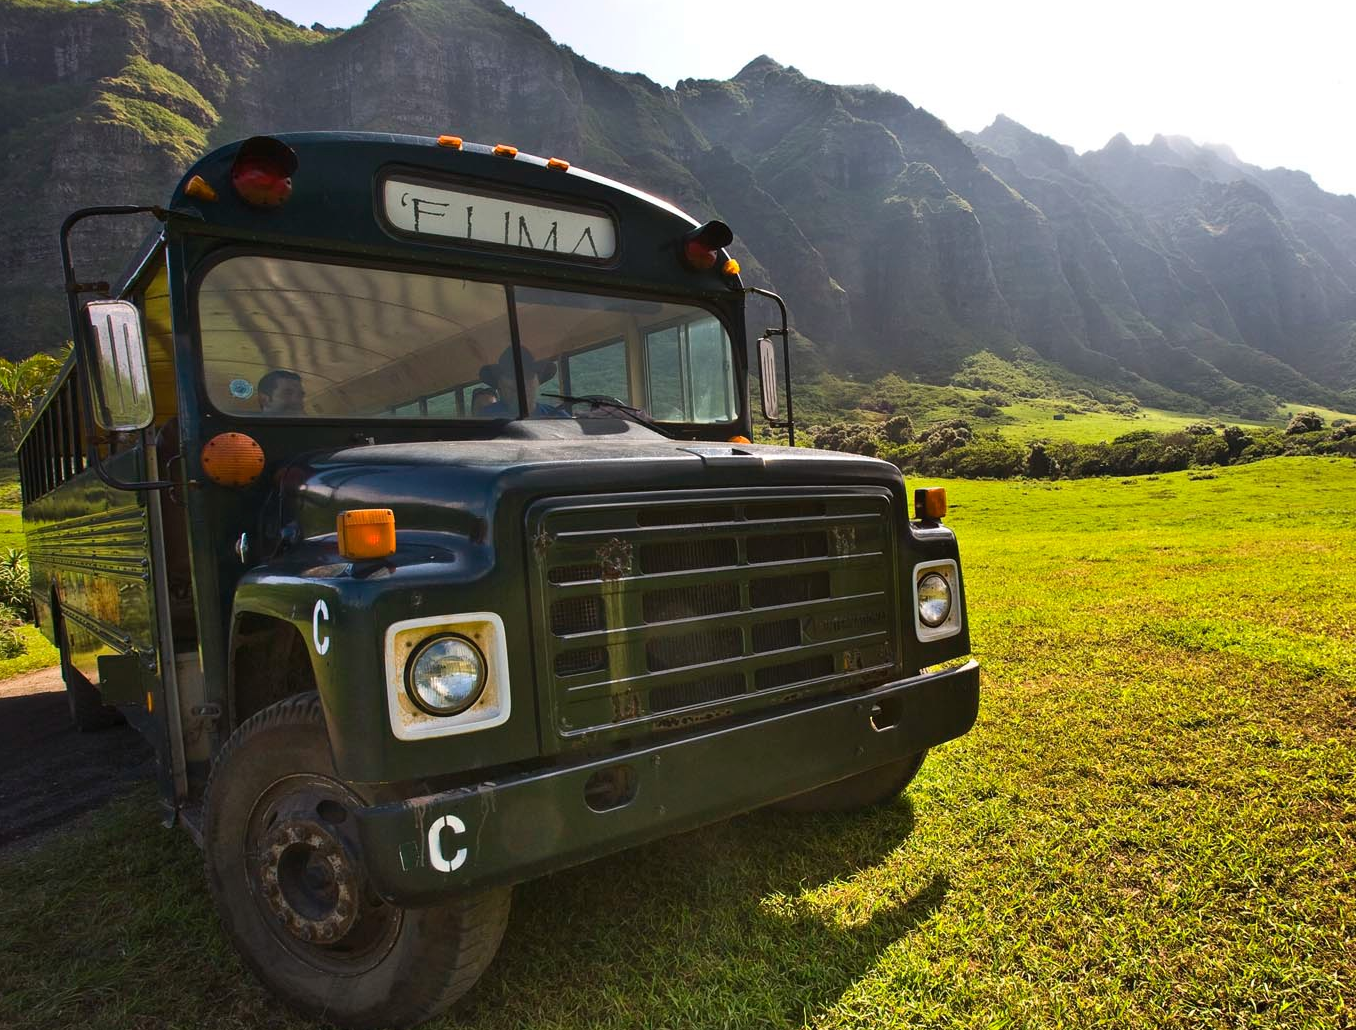 kualoa ranch Kaaawa Bus Pic